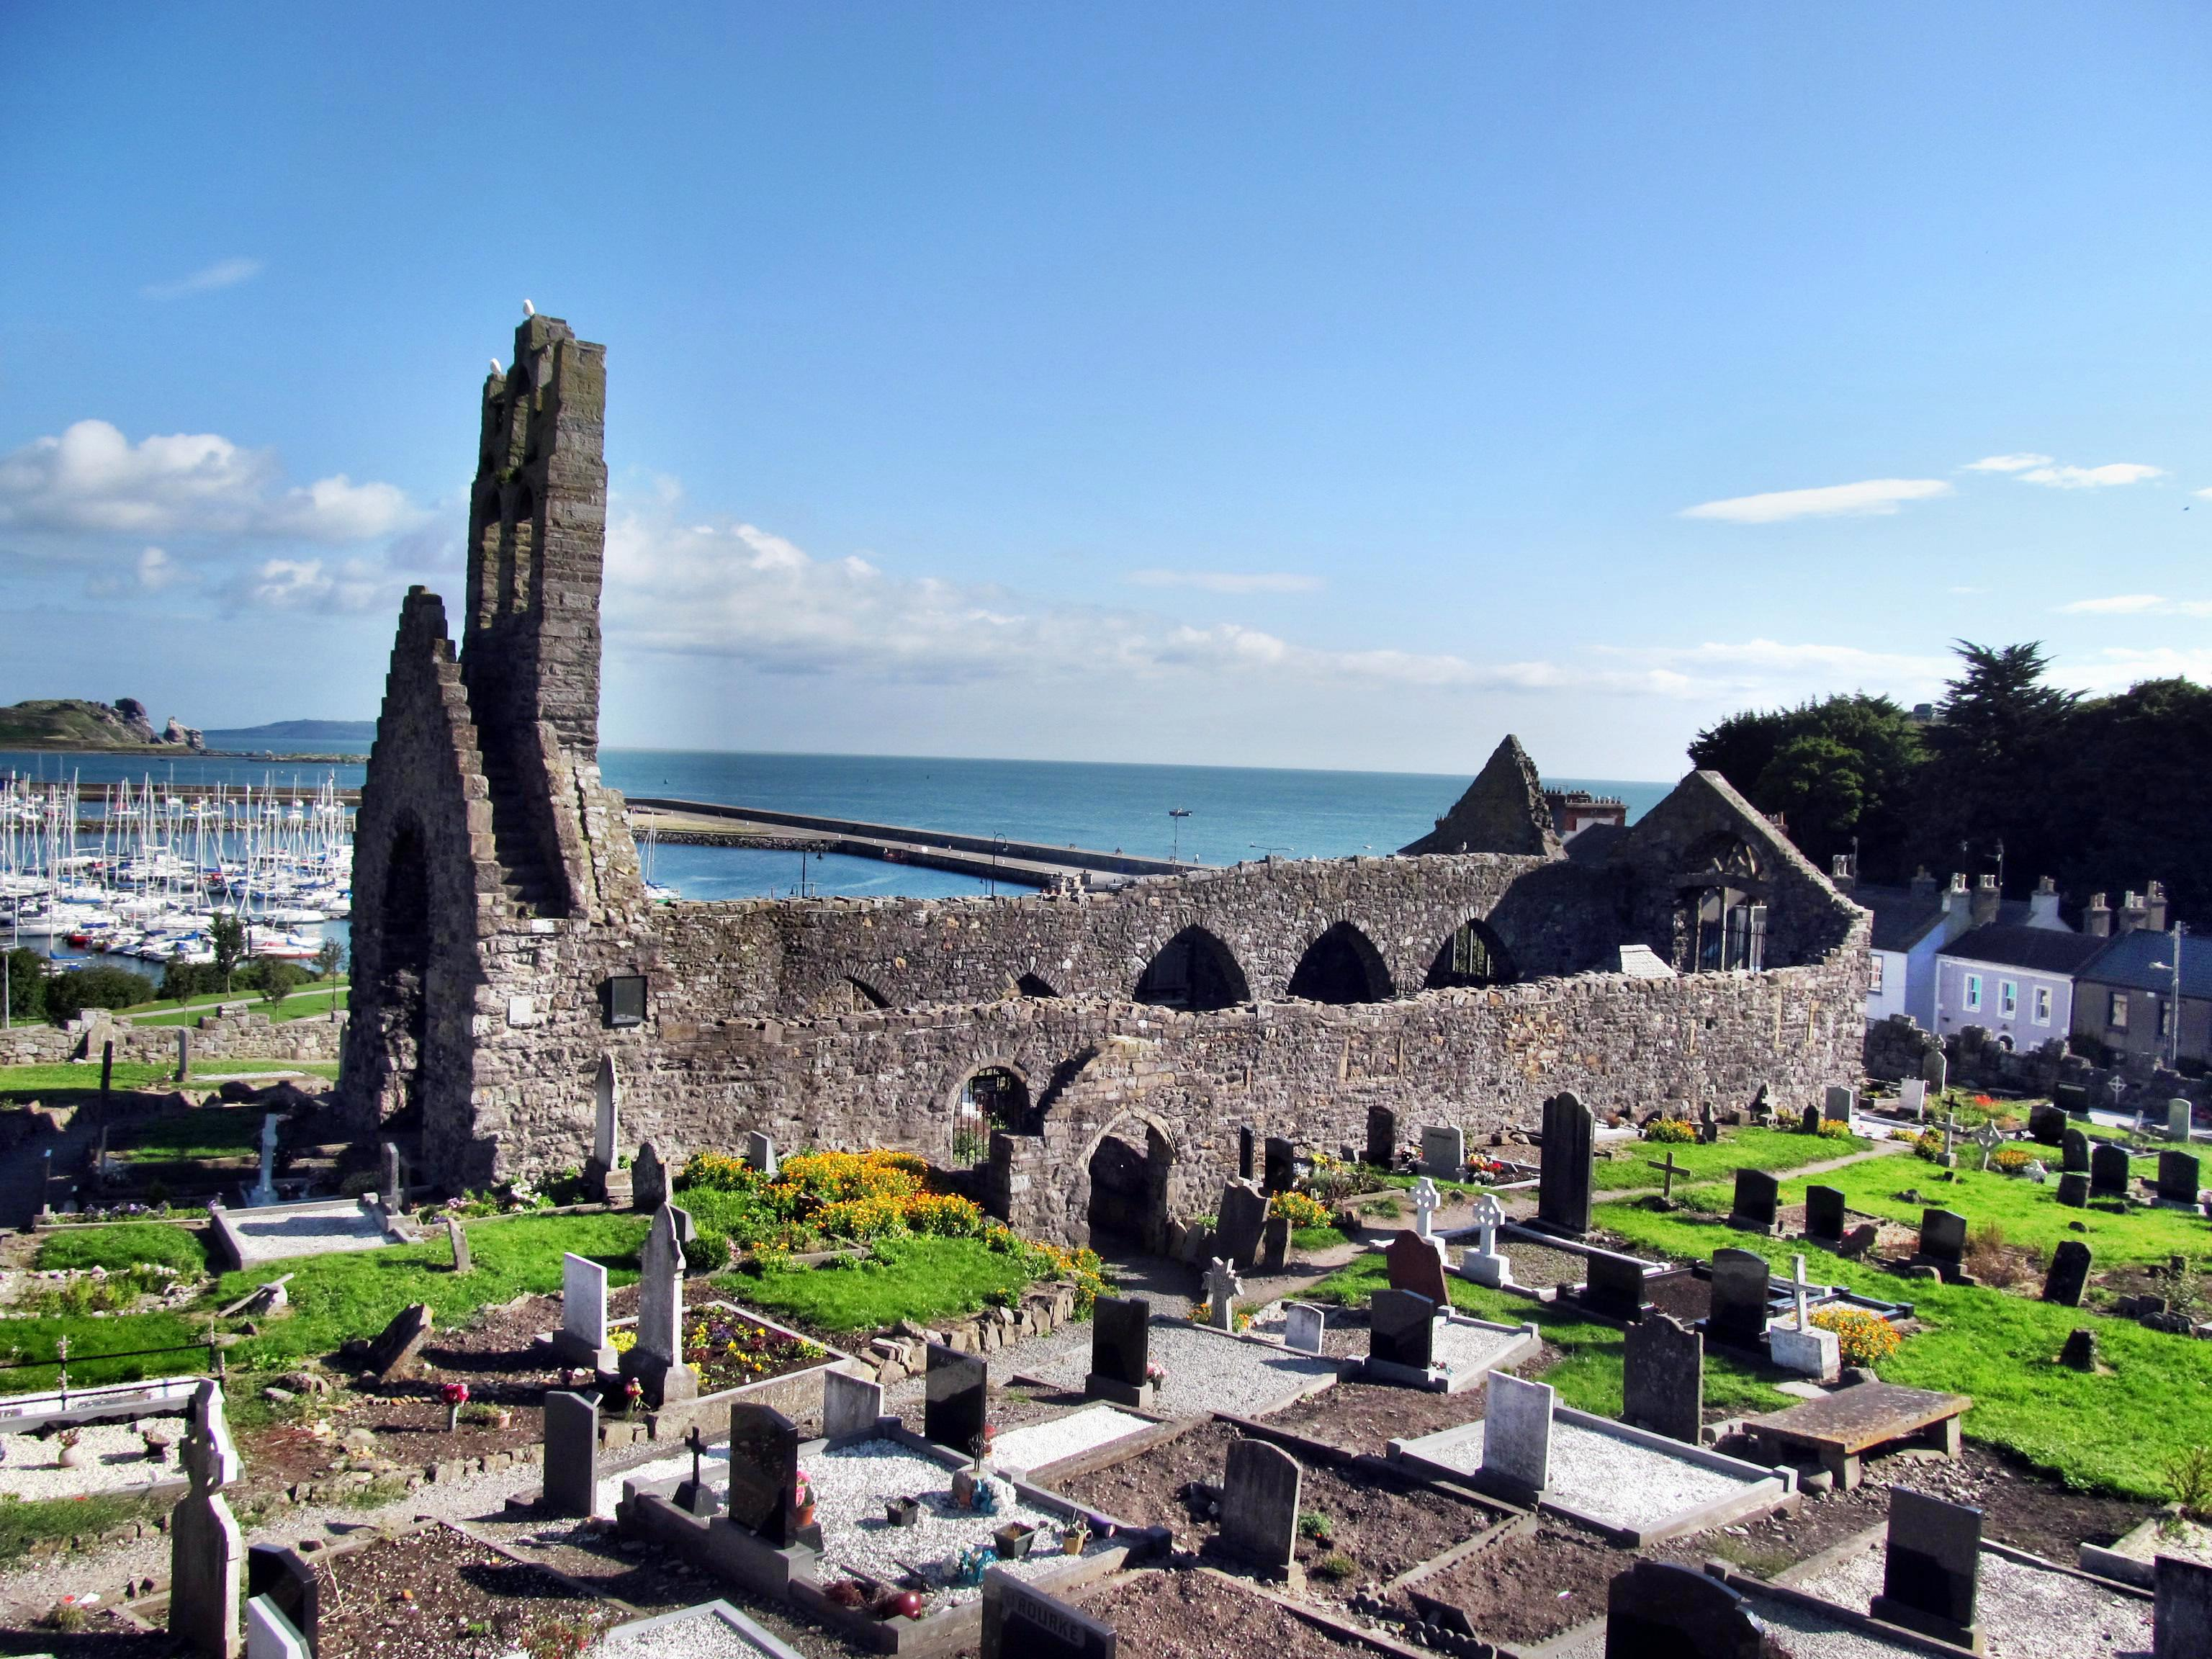 St. Mary's Abbey, overlooking Howth Harbour